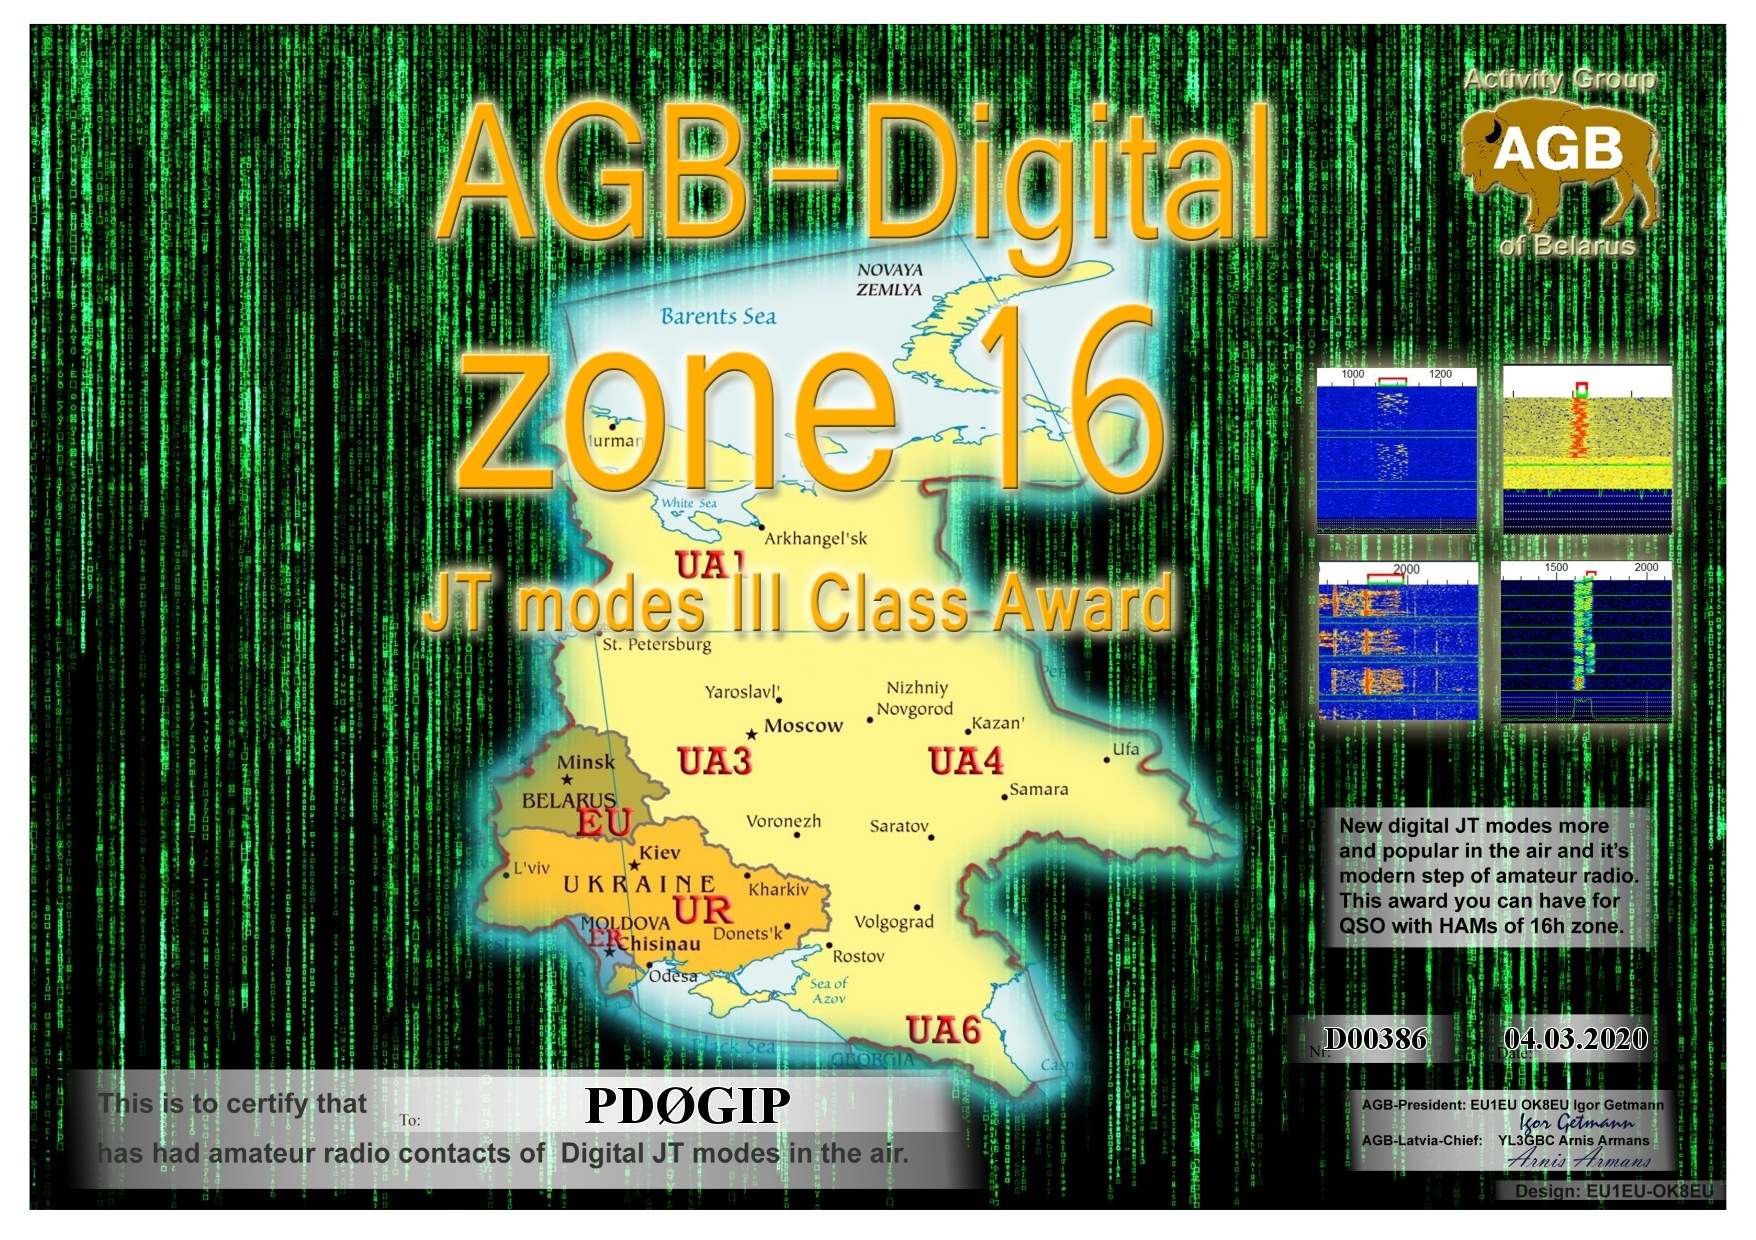 PD0GIP ZONE16 BASIC III AGB